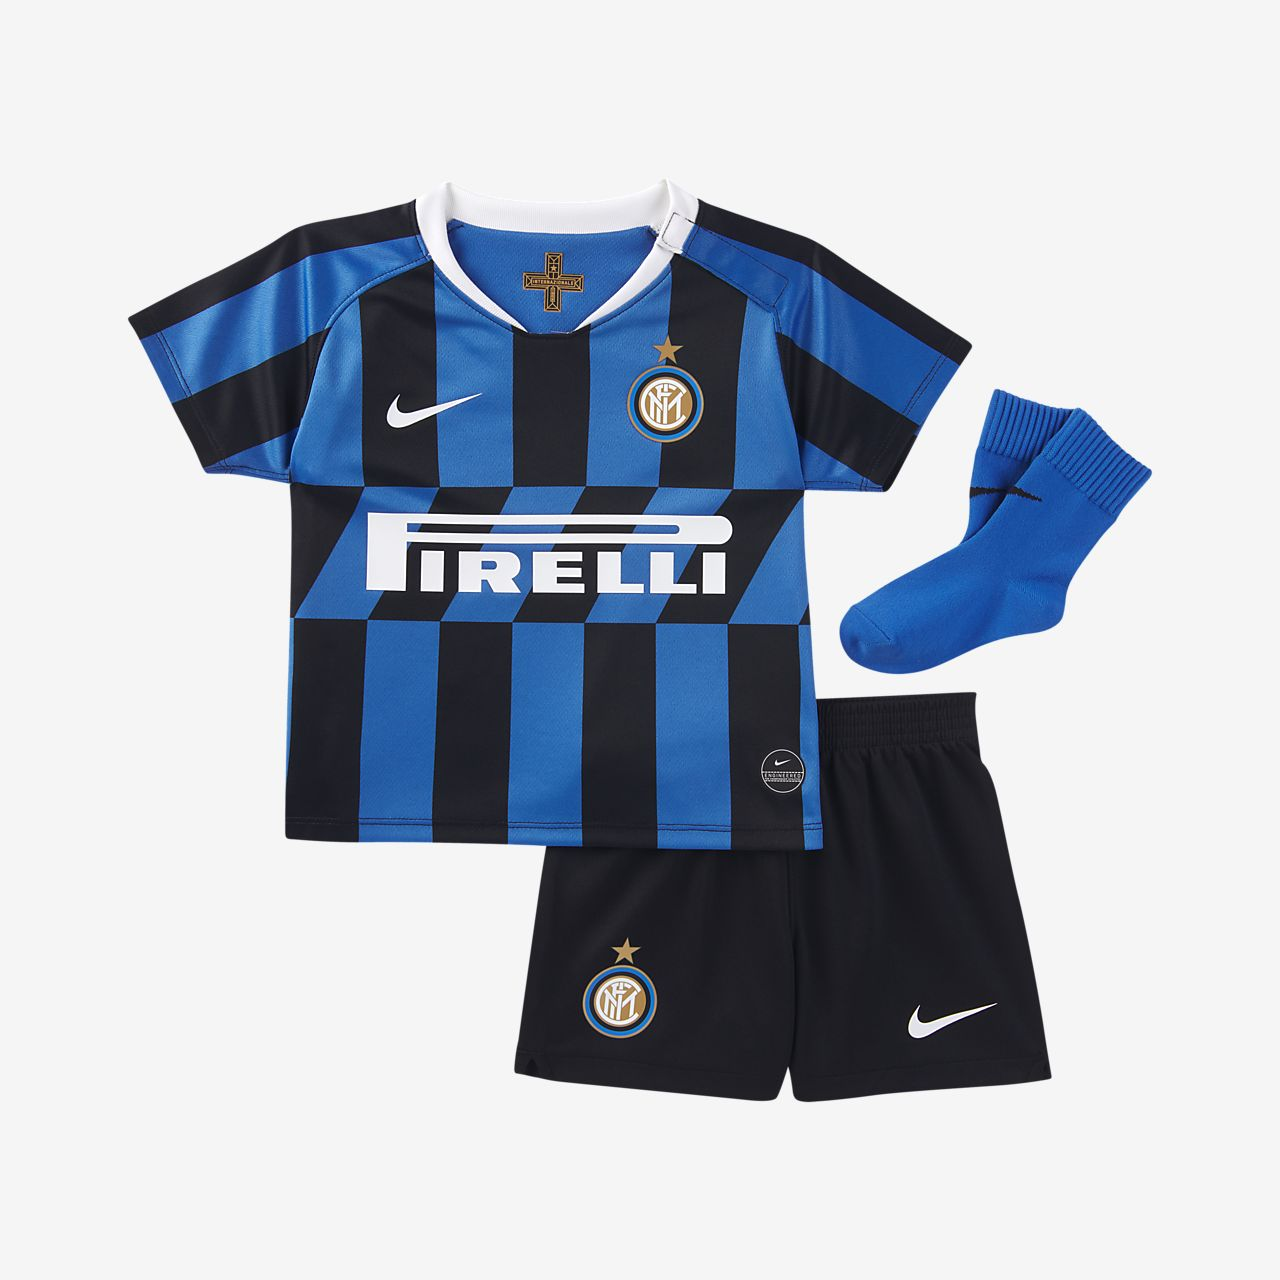 Inter Milan 2019/20 Home Baby and Toddler Football Kit